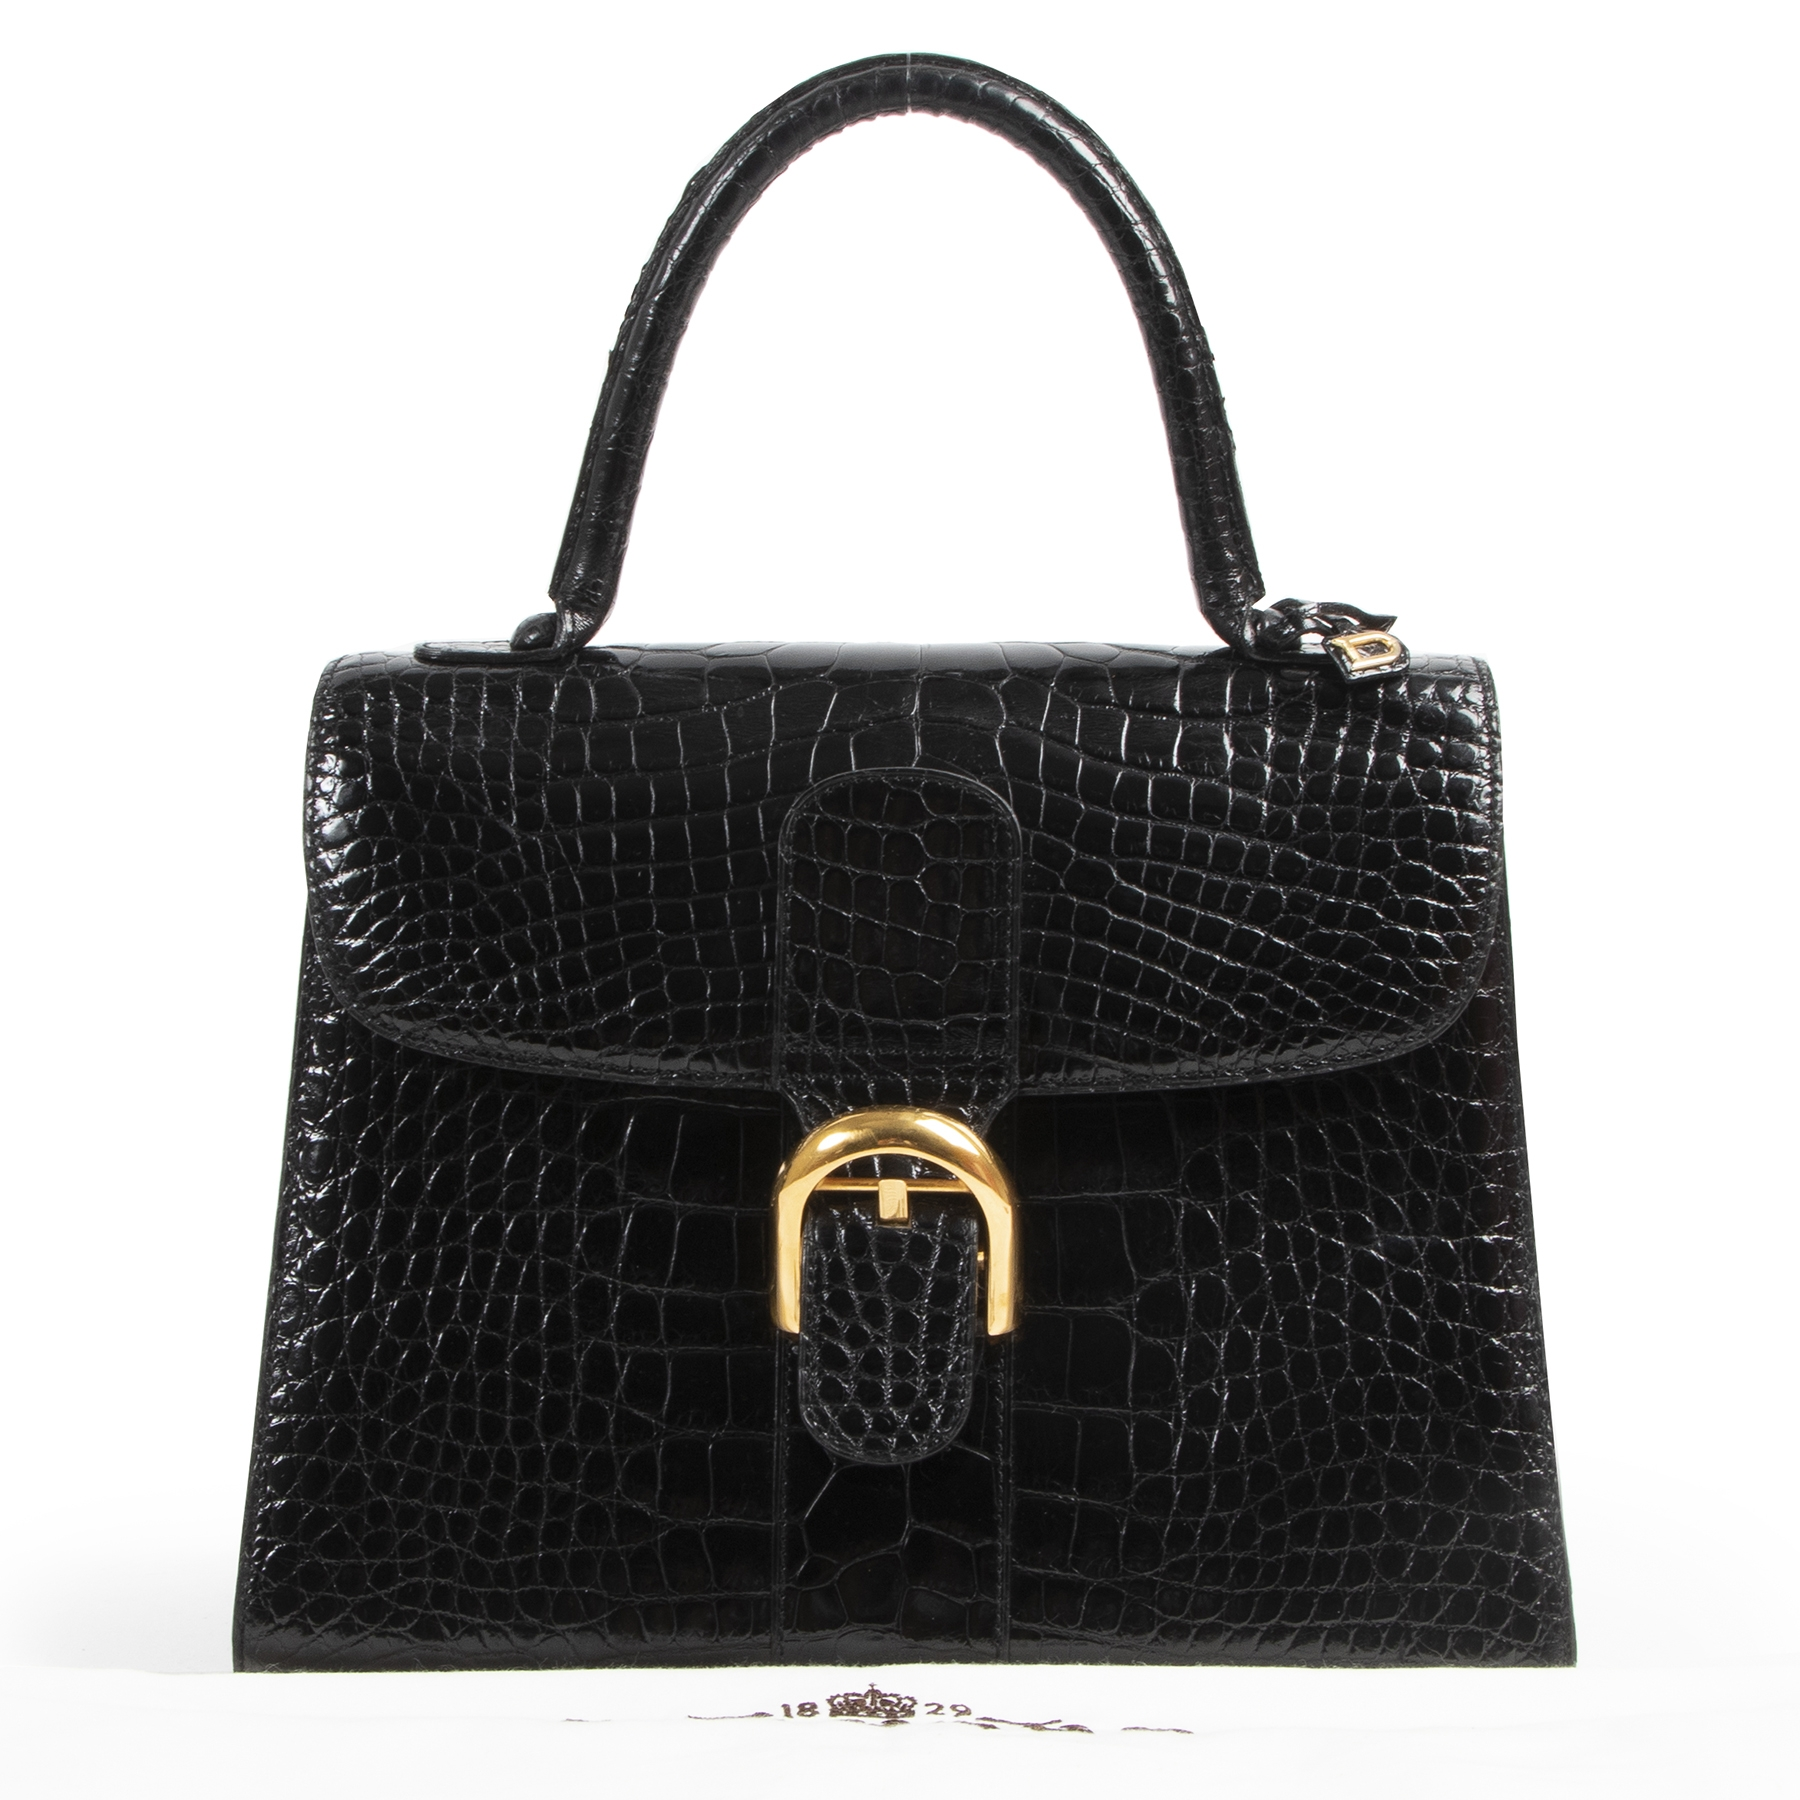 Delvaux Black Croco Brillant MM GHW for sale online